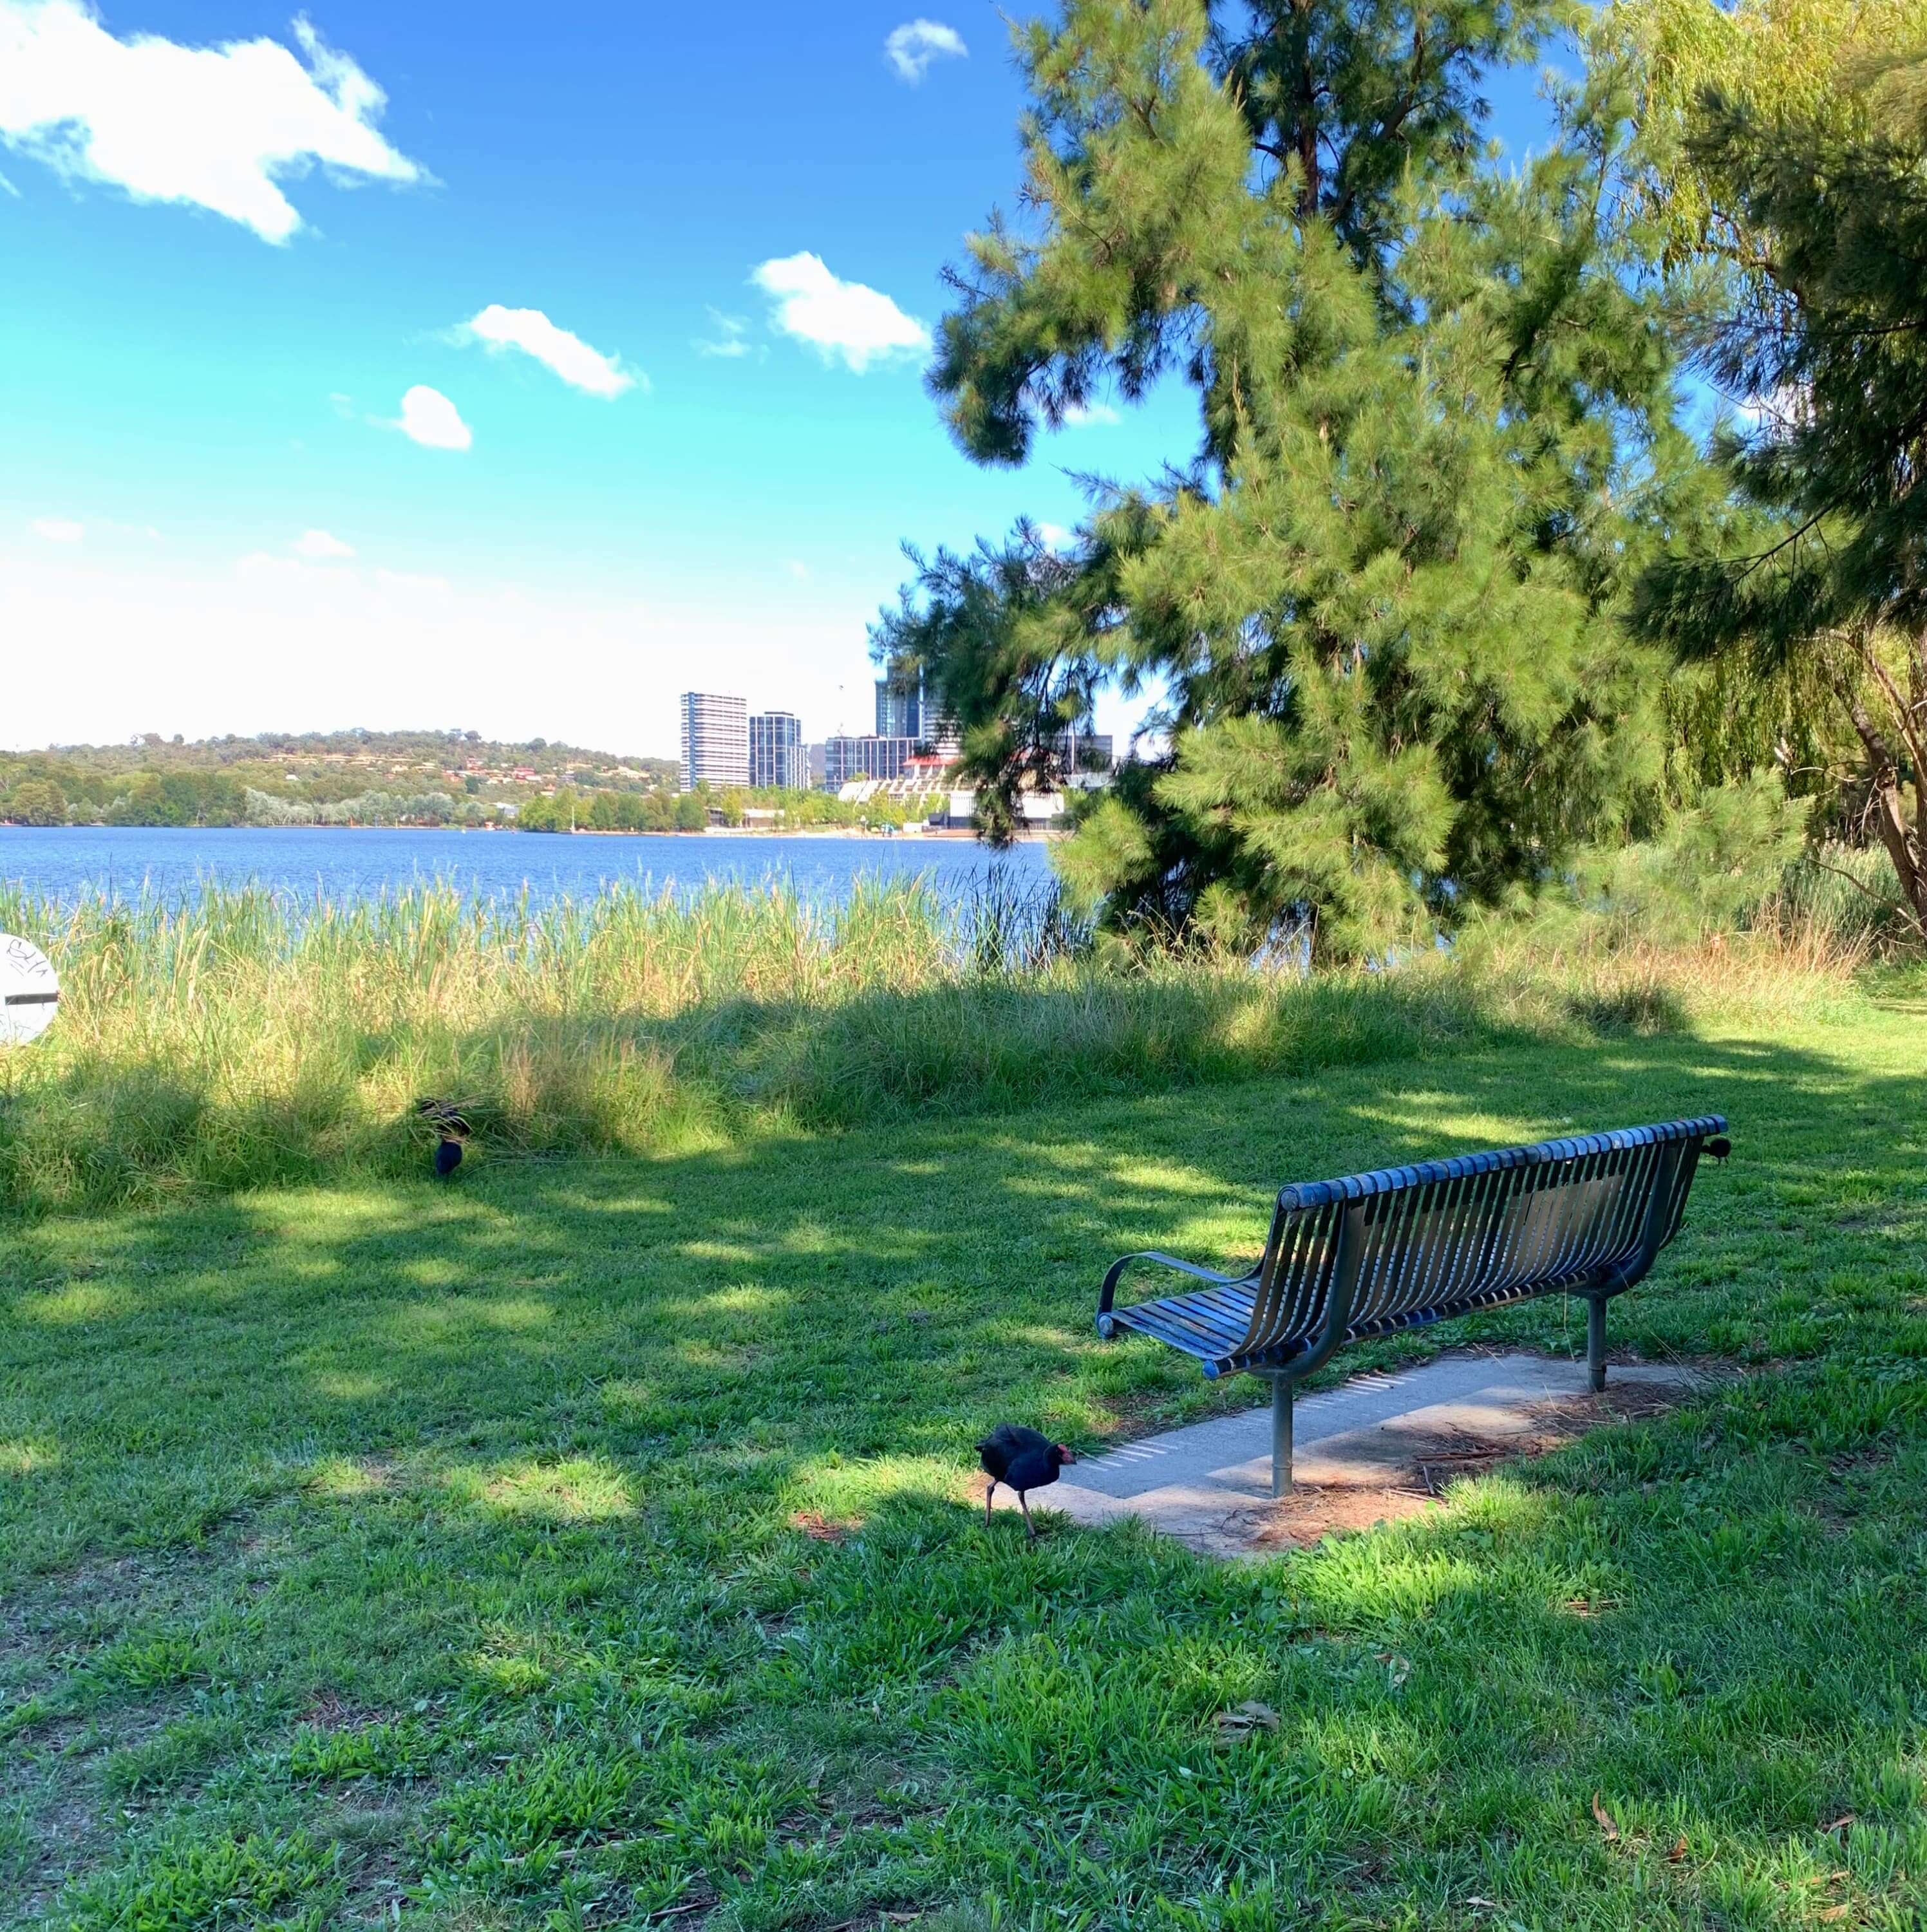 a bird and a single bench in the bikepath along Lake Ginninderra, Canberra